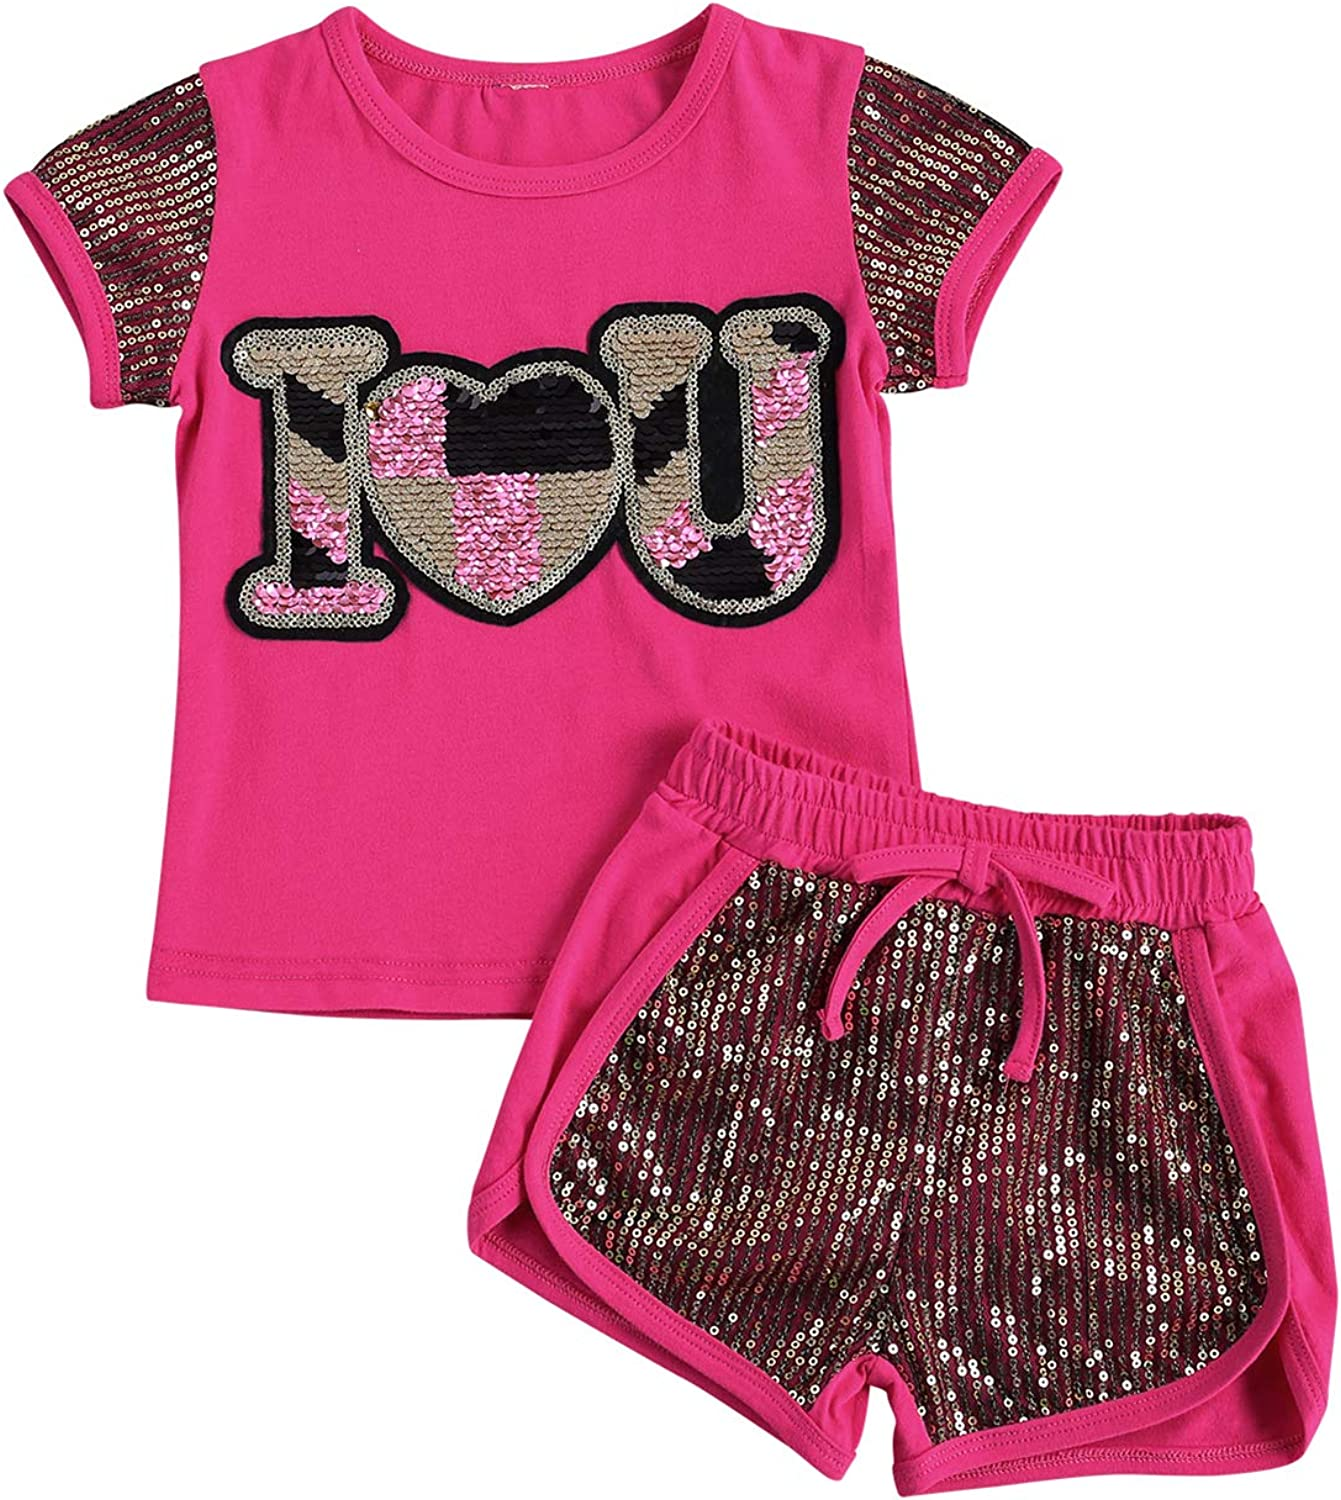 6M-7T Toddler Baby Girl Summer Cool Set Clothes T-Shirts New sales Sequins Max 76% OFF